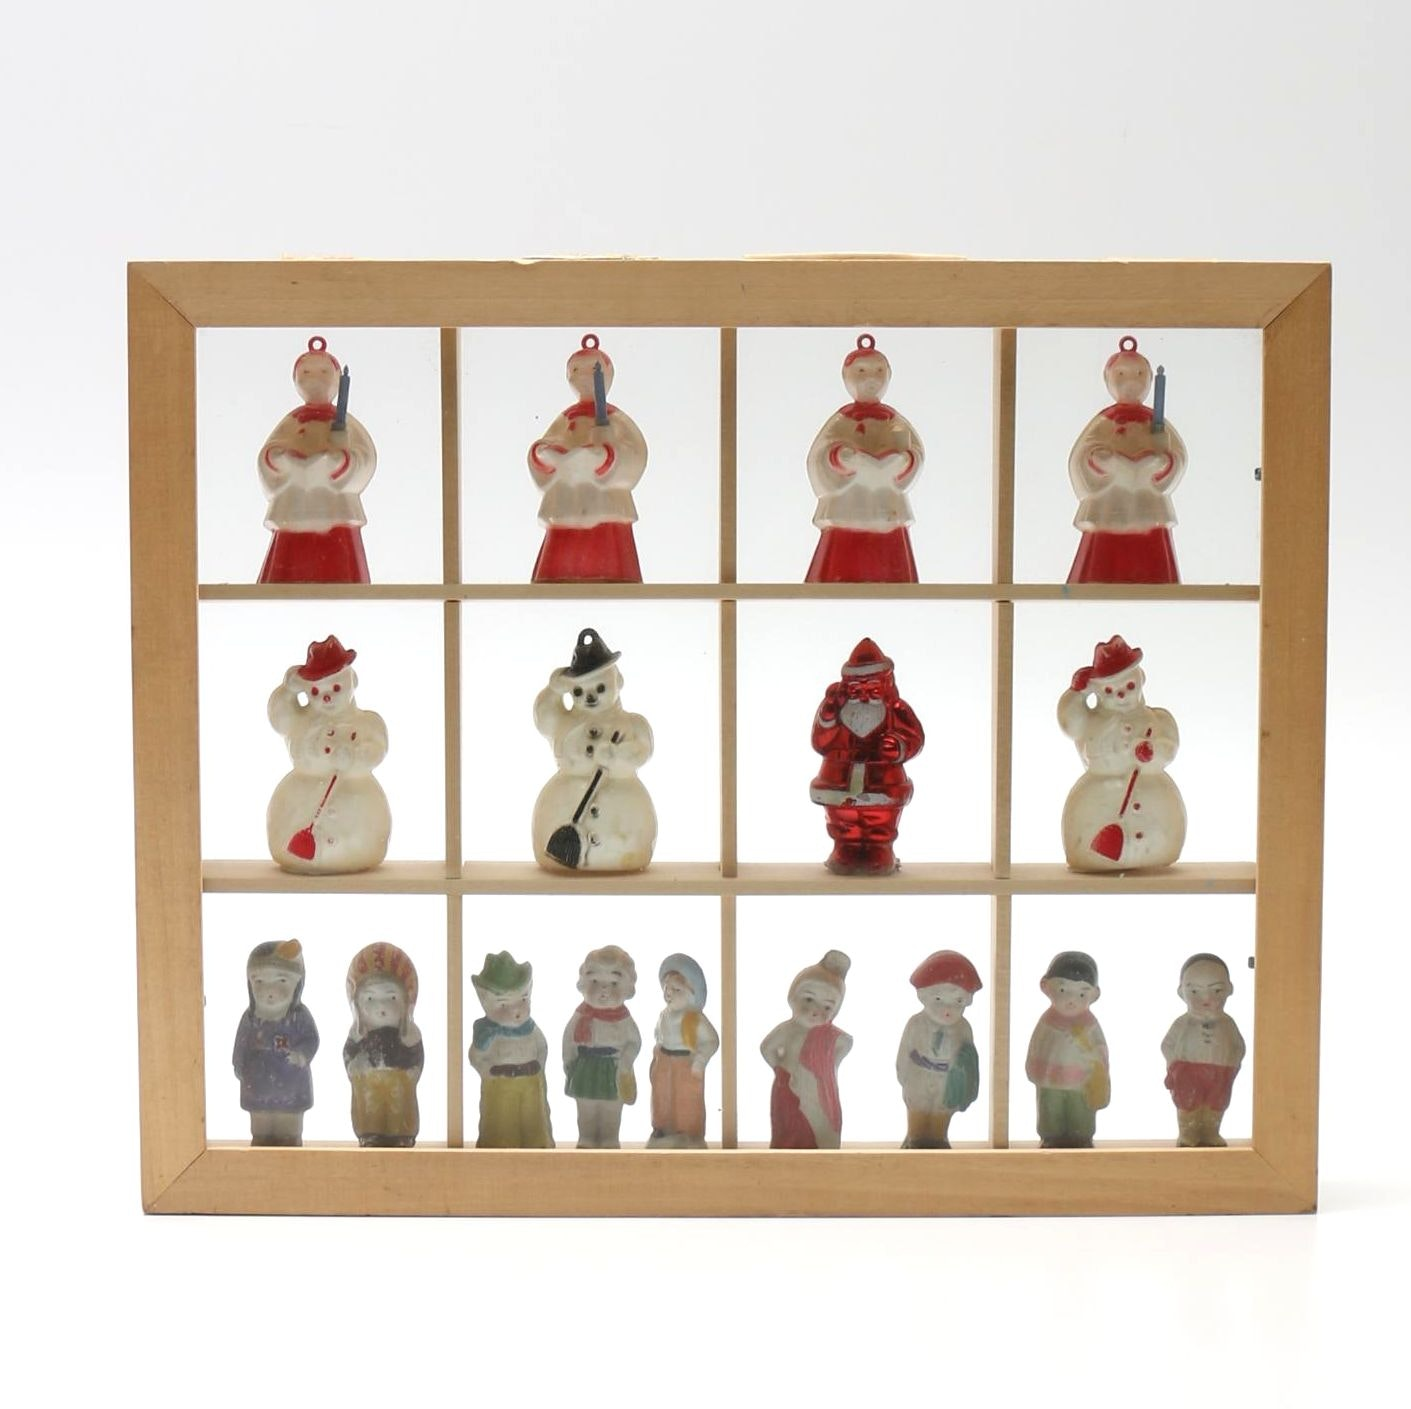 Shadow Box Filled With Figurines and Ornaments